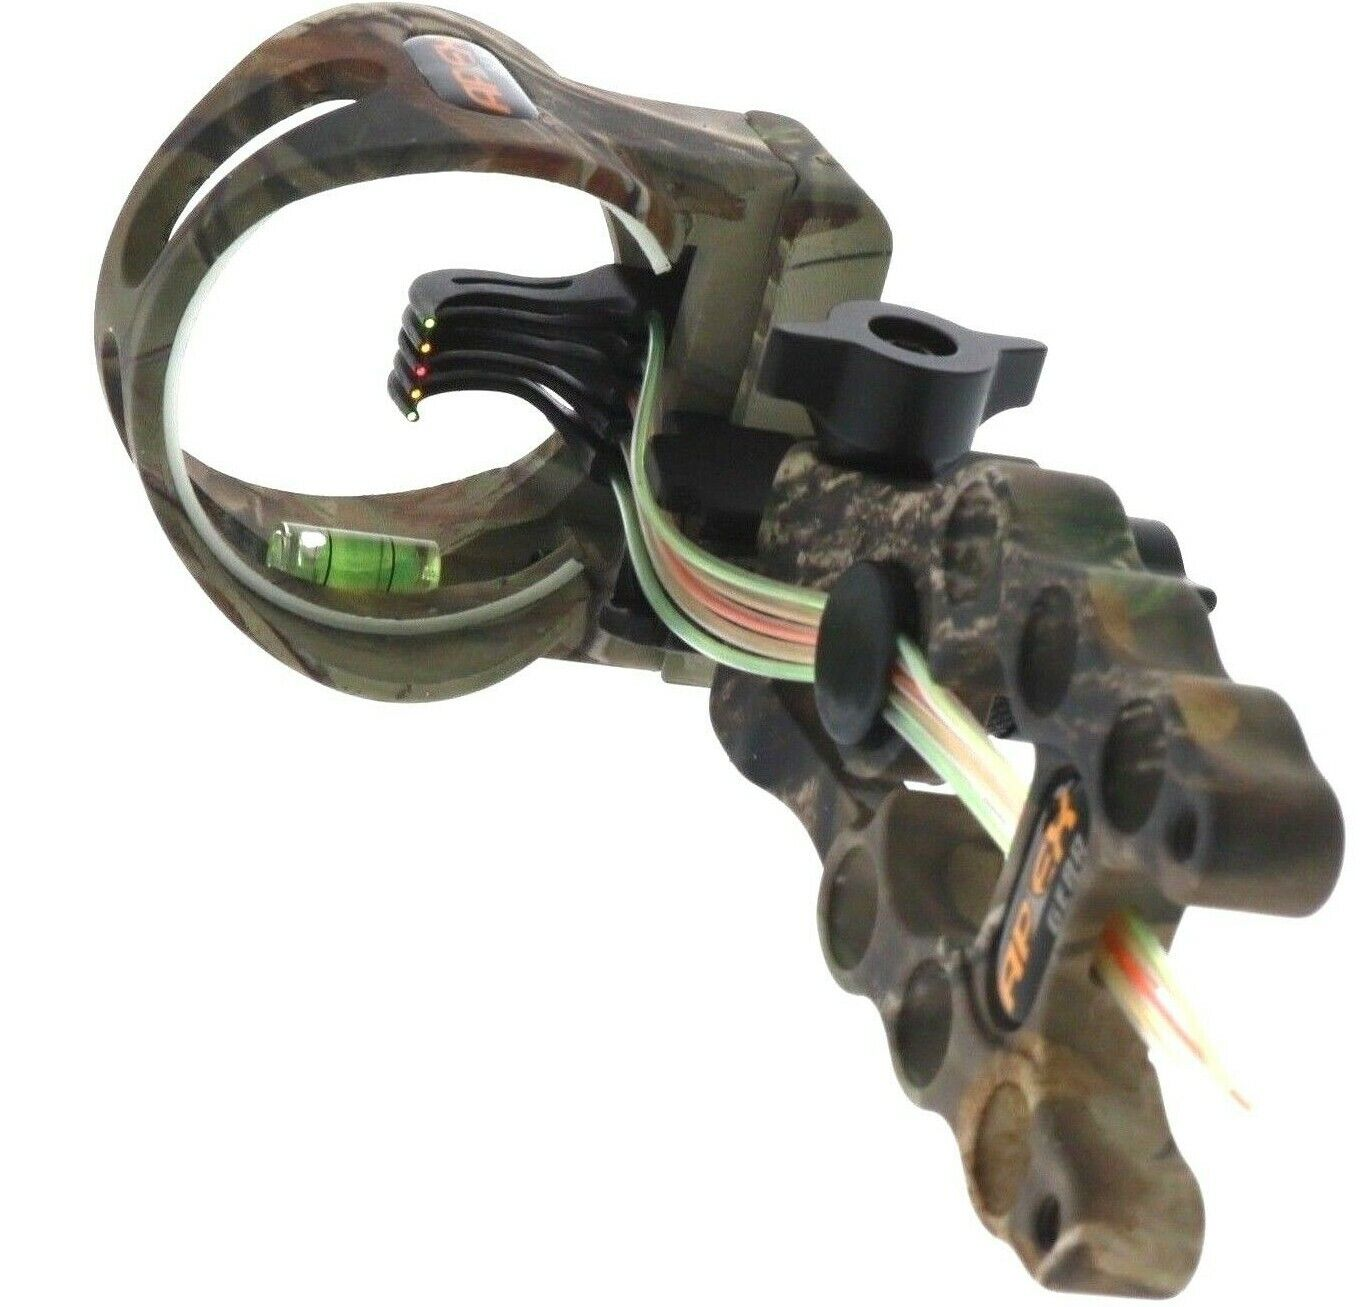 Apex Accu Strike Pro 5 Pin Sight Camo AP Camo  NEW